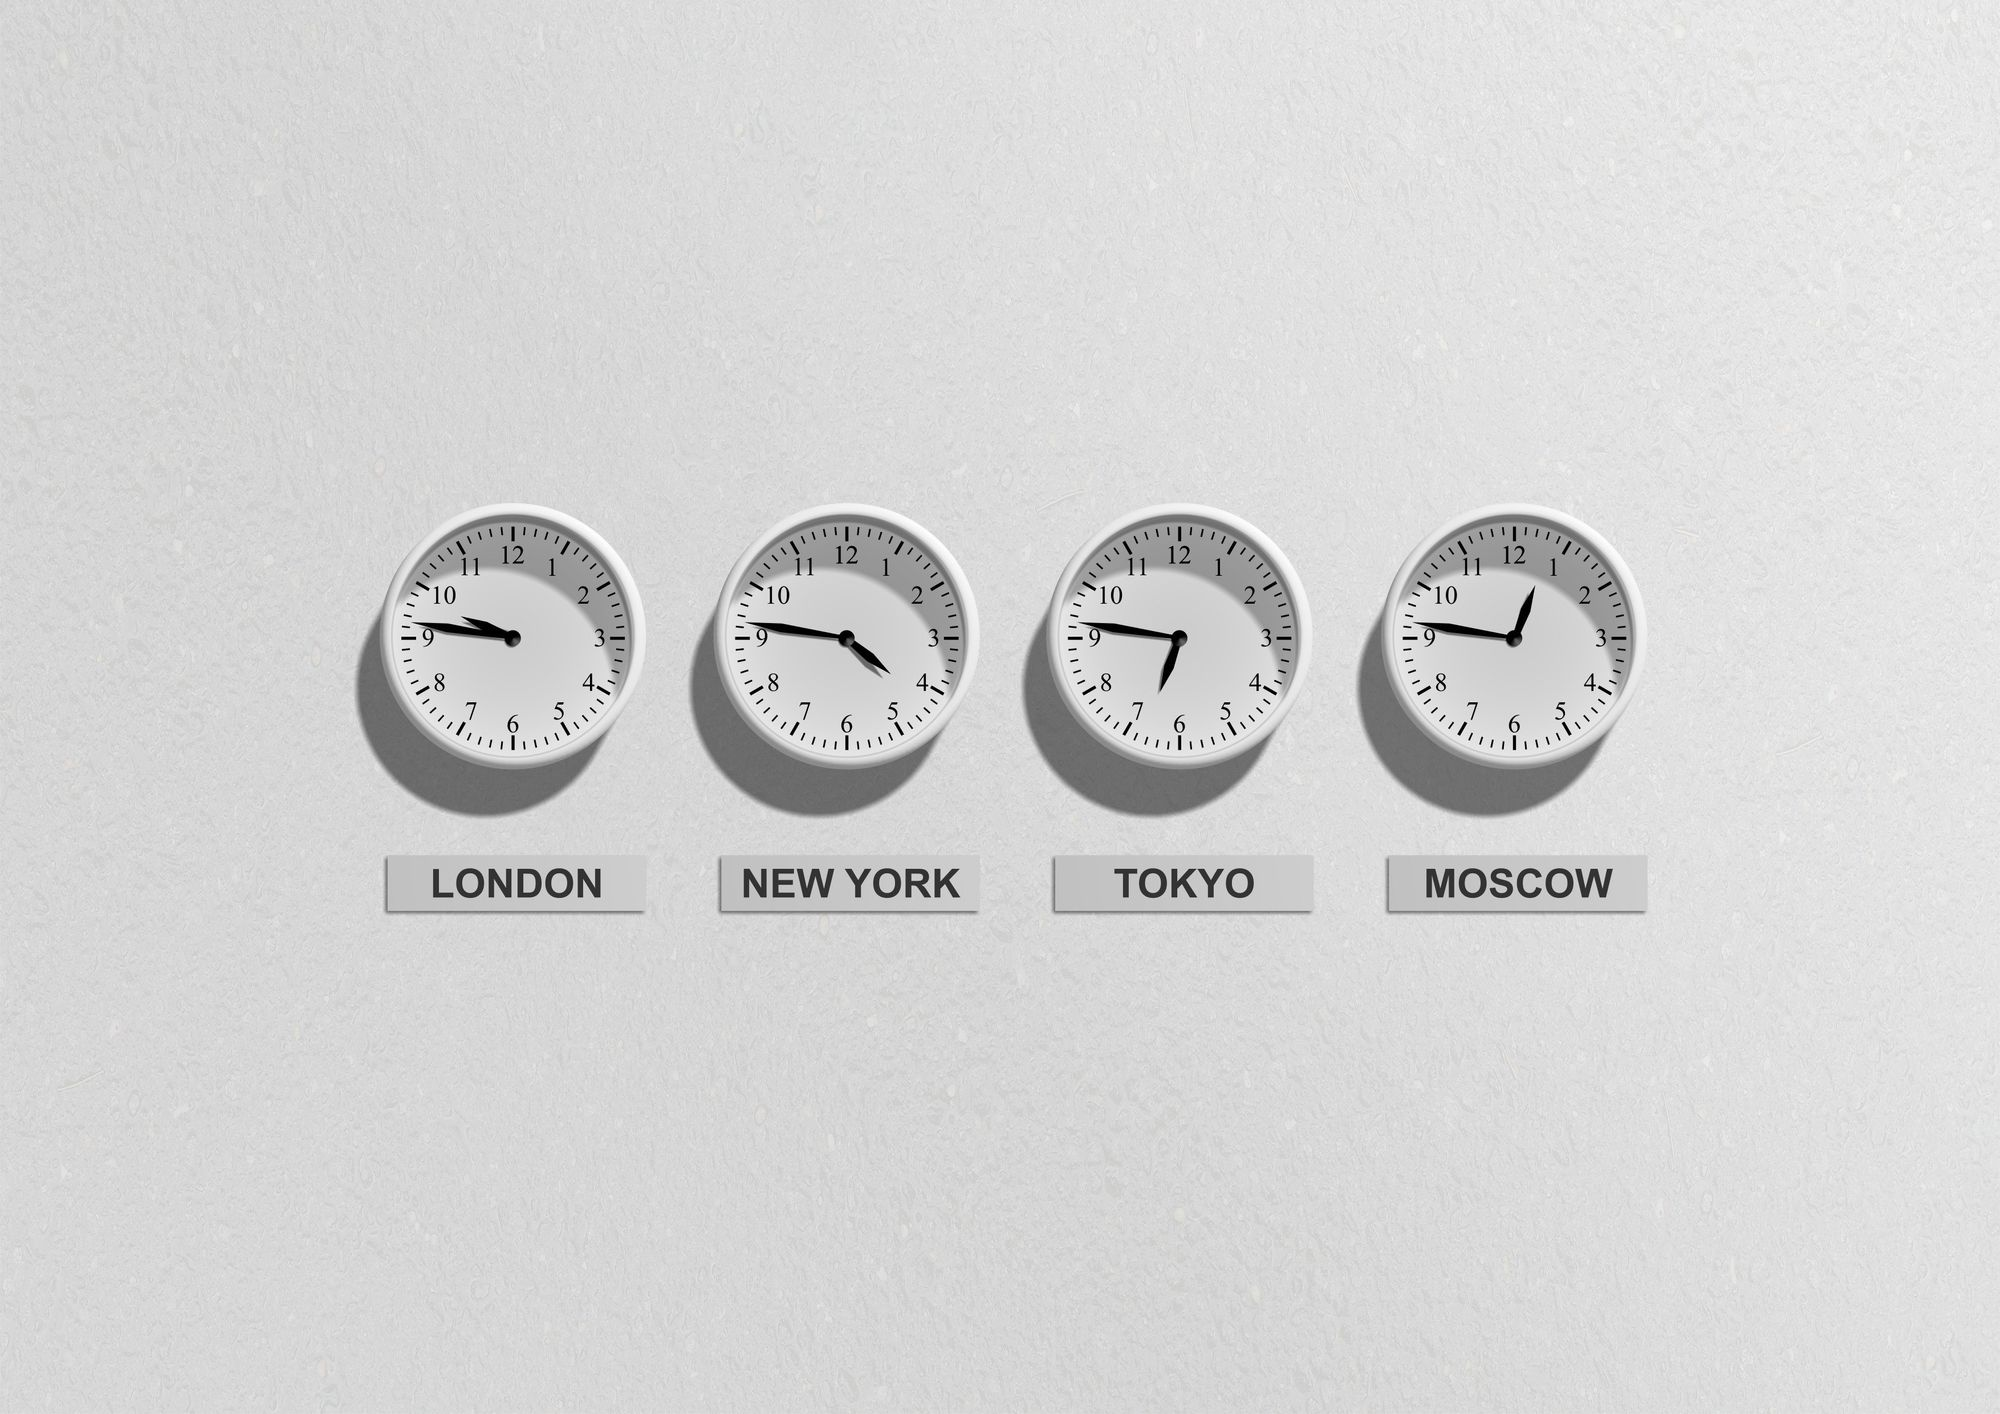 Auto-Detecting a User's Time Zone in Rails